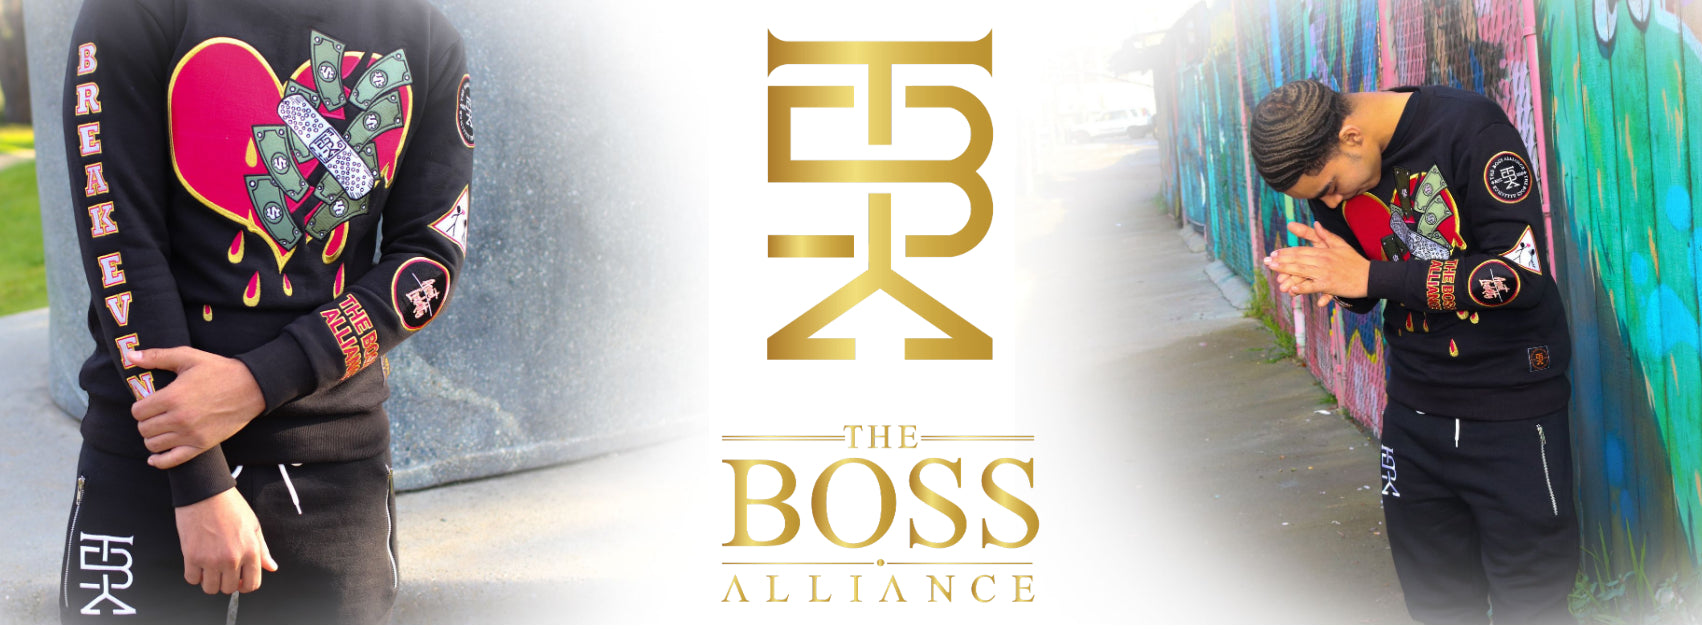 The Boss Alliance